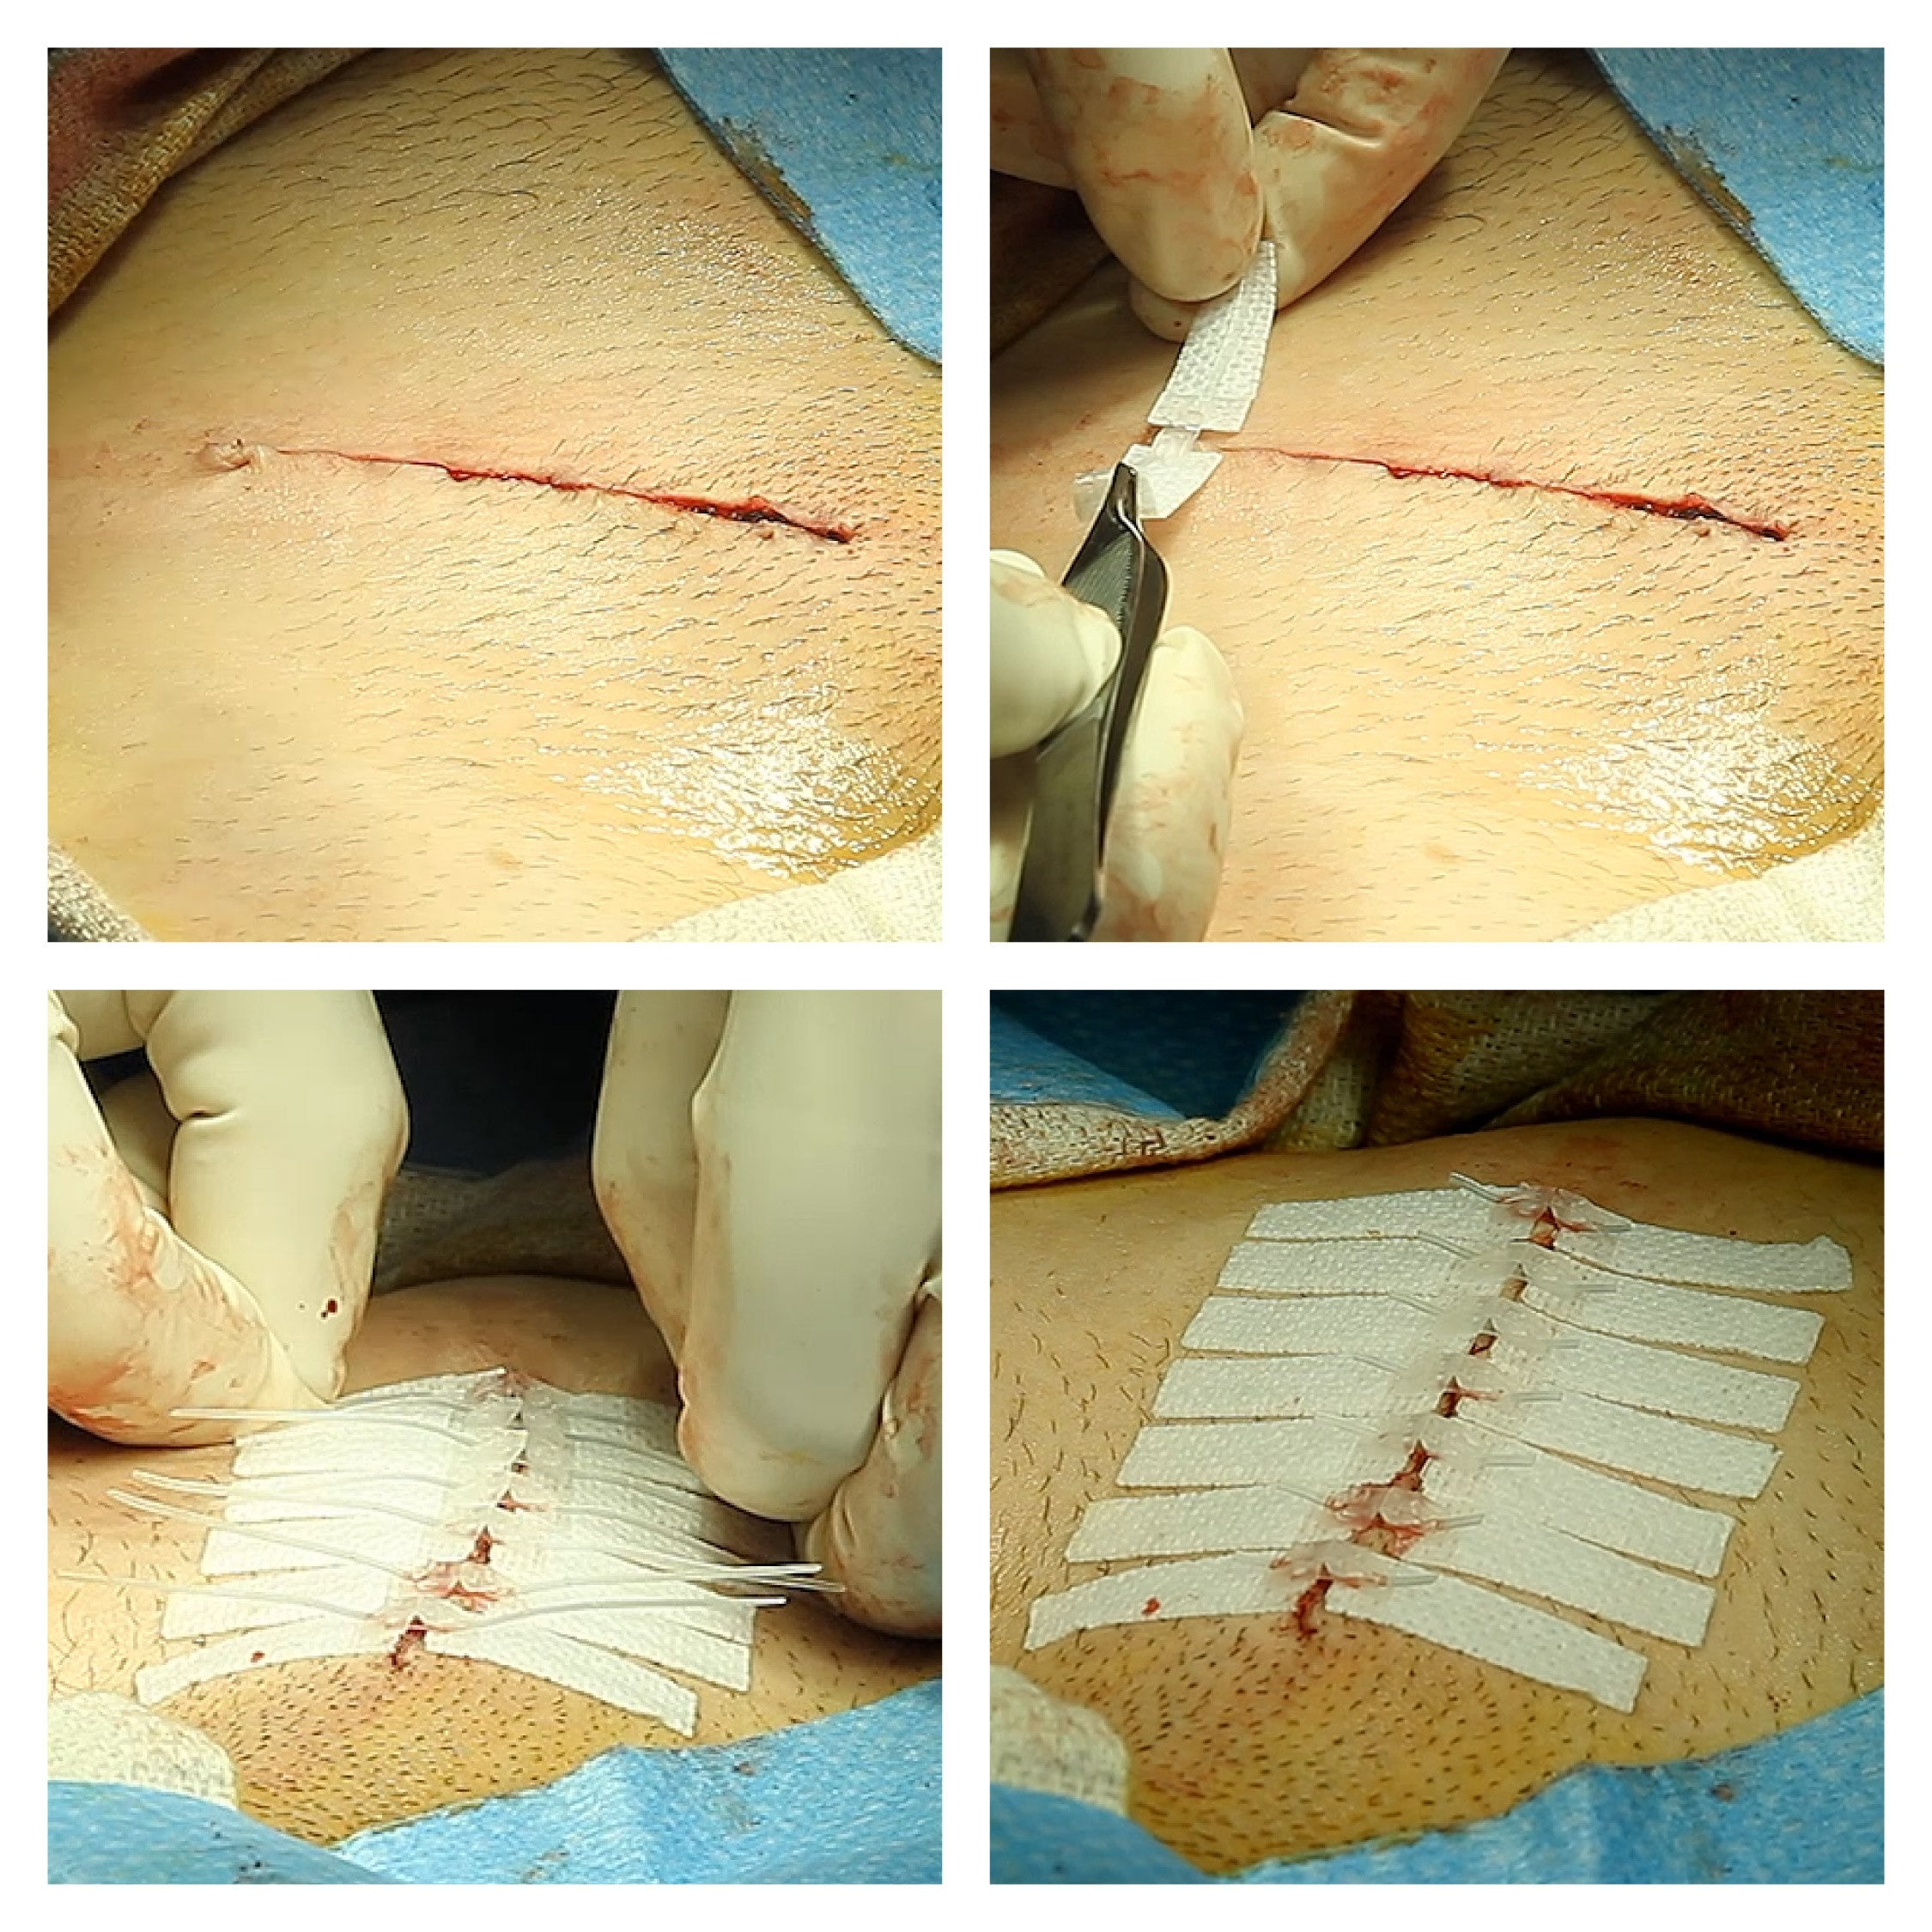 dermaclip non-invasive wound closure used to close an abdominal surgery. needle-free skin closure for surgical incisions